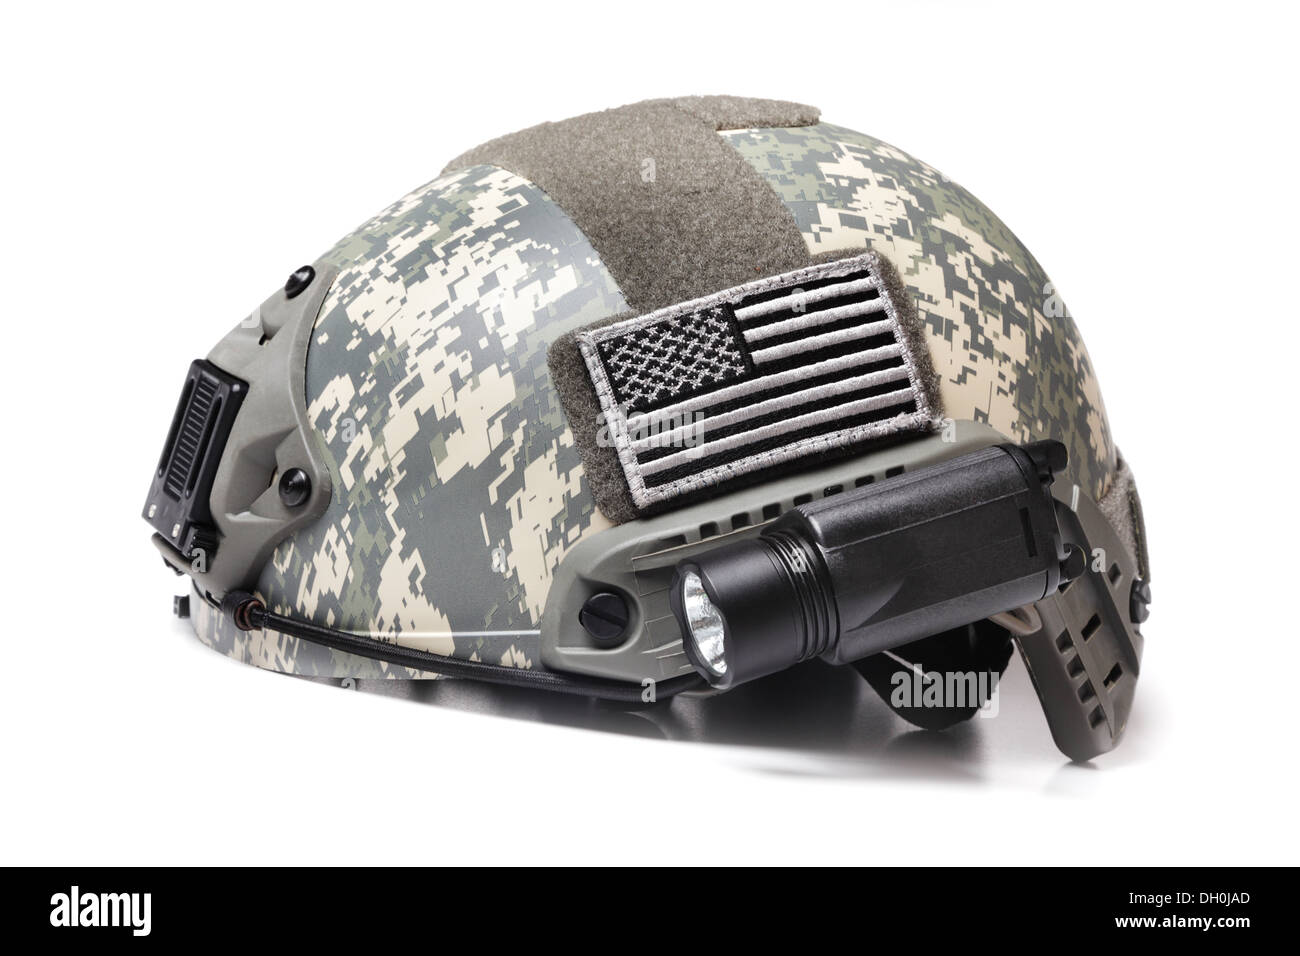 Modern Spec Ops Acupat Camo Helmet with USA Flag Patch Isolated on White - Stock Image